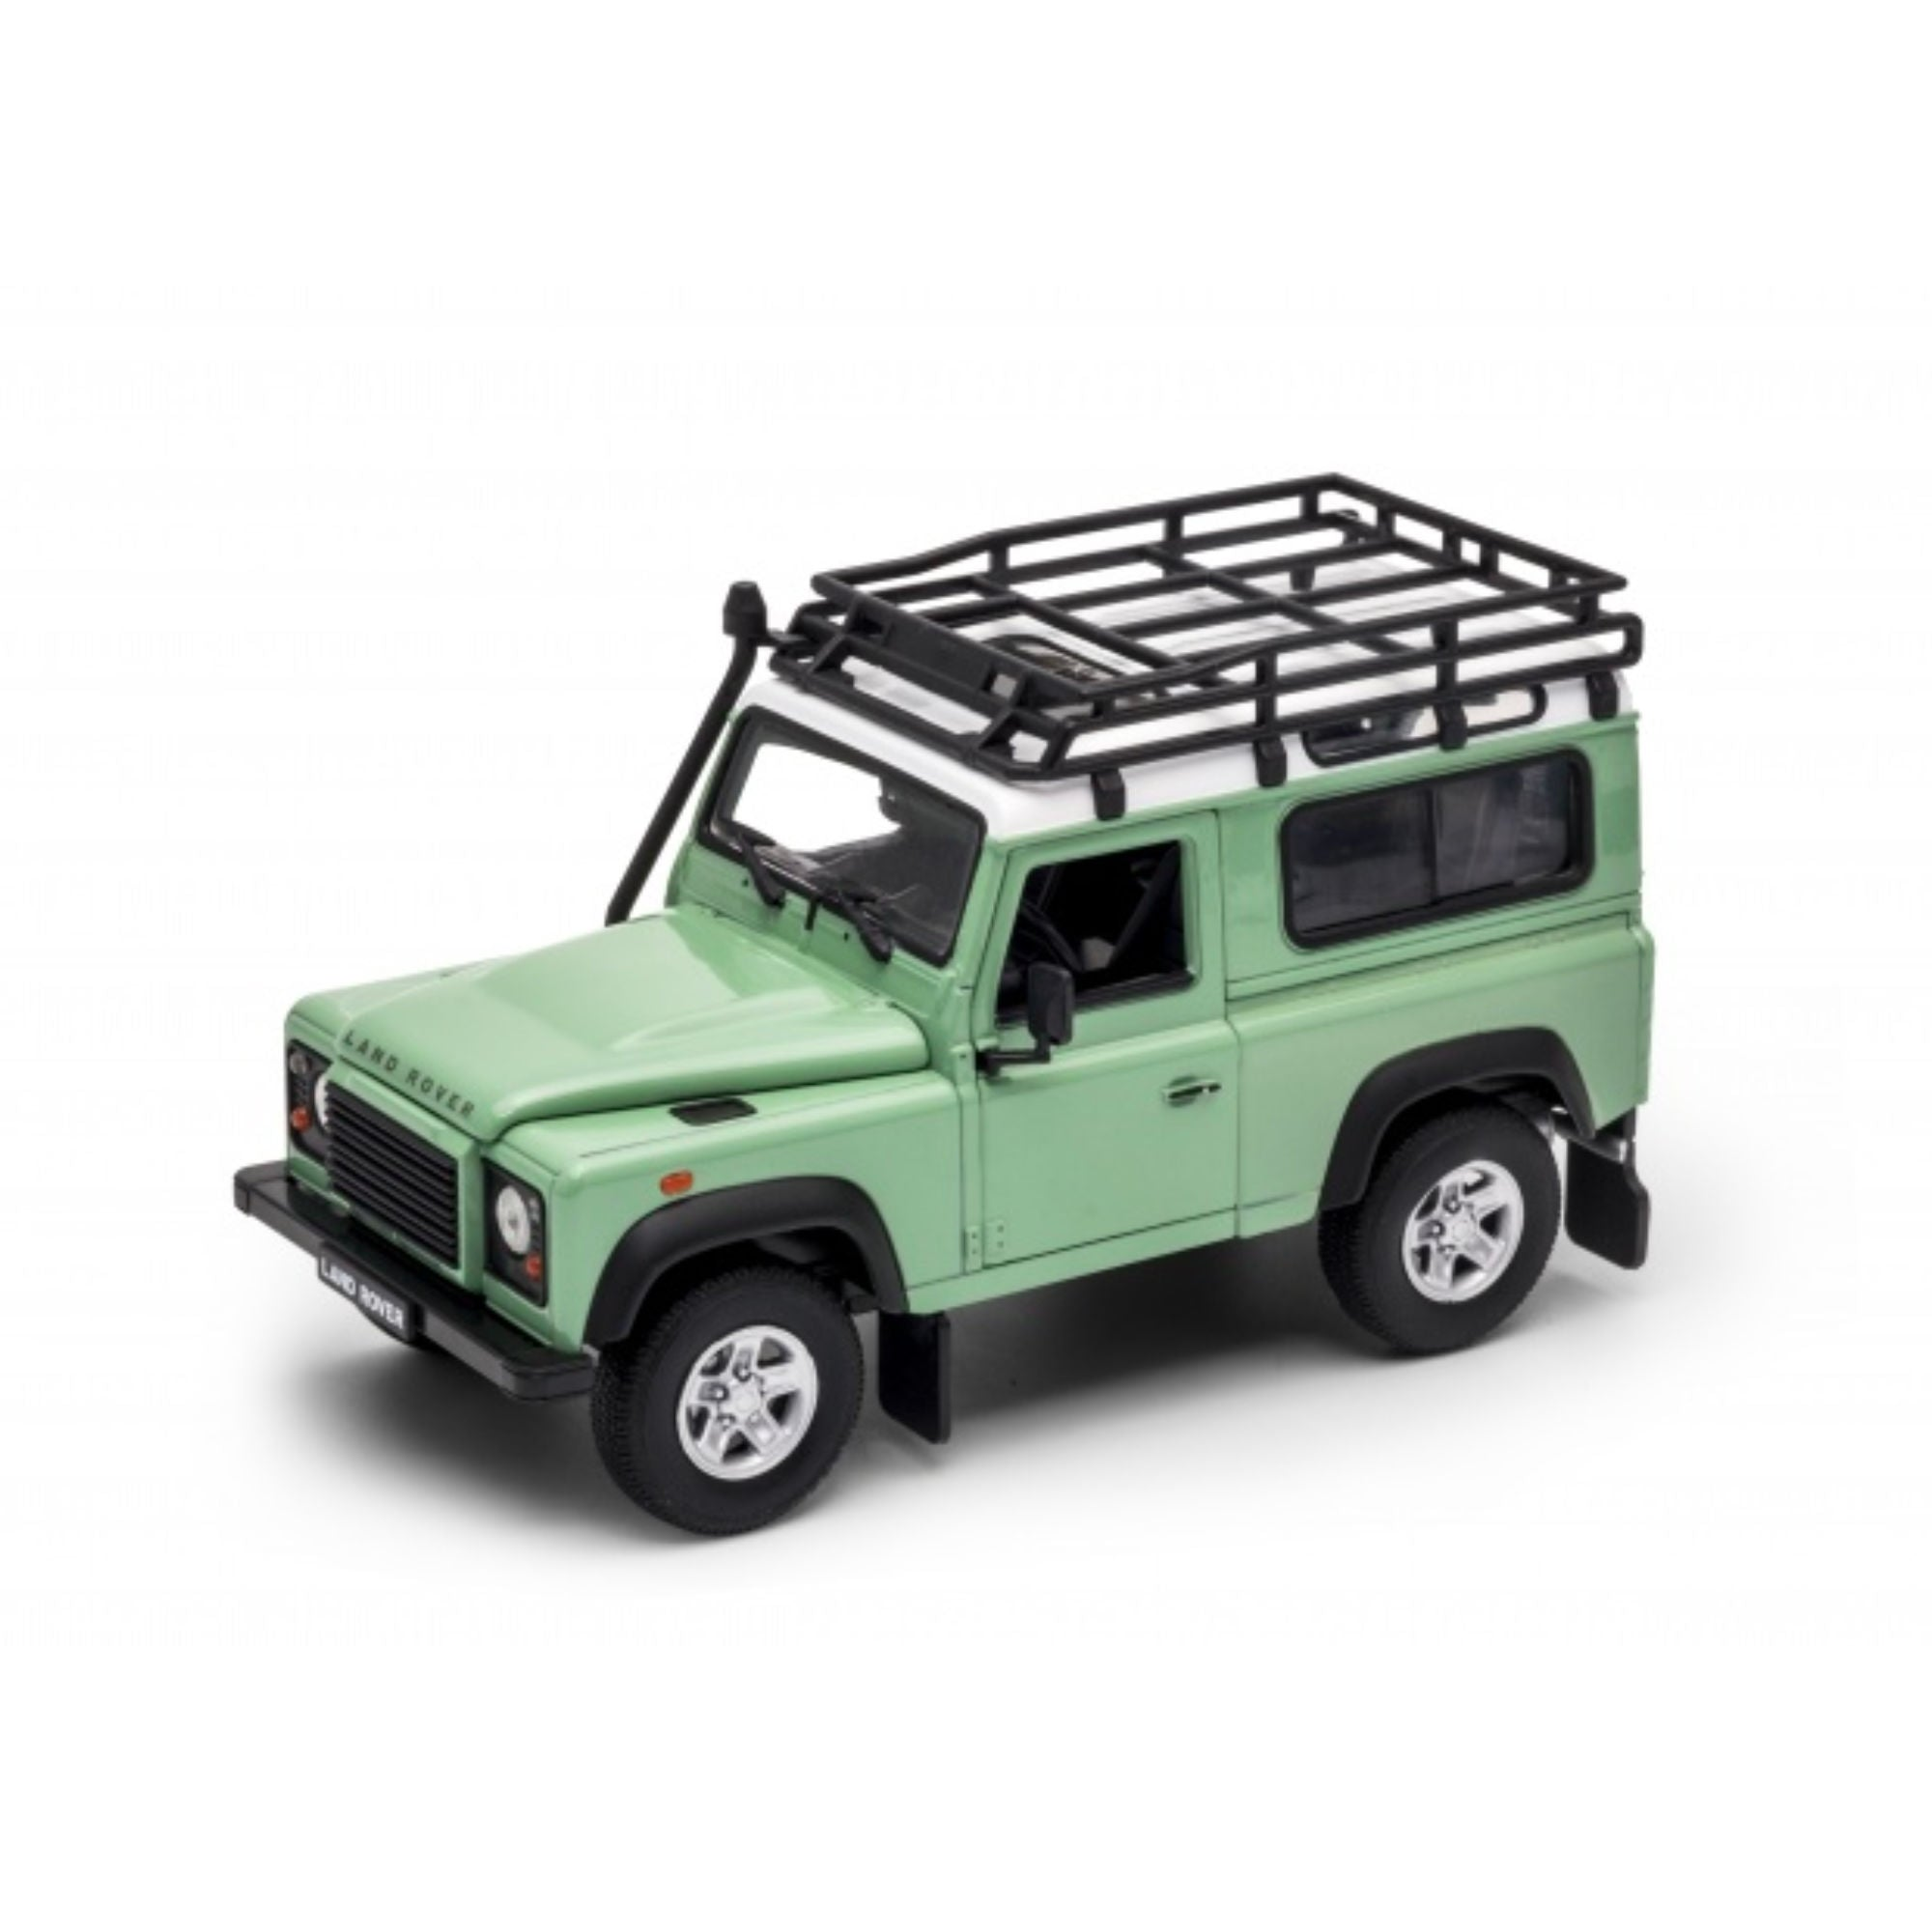 Welly Land Rover Defender 1:24 Diecast Model